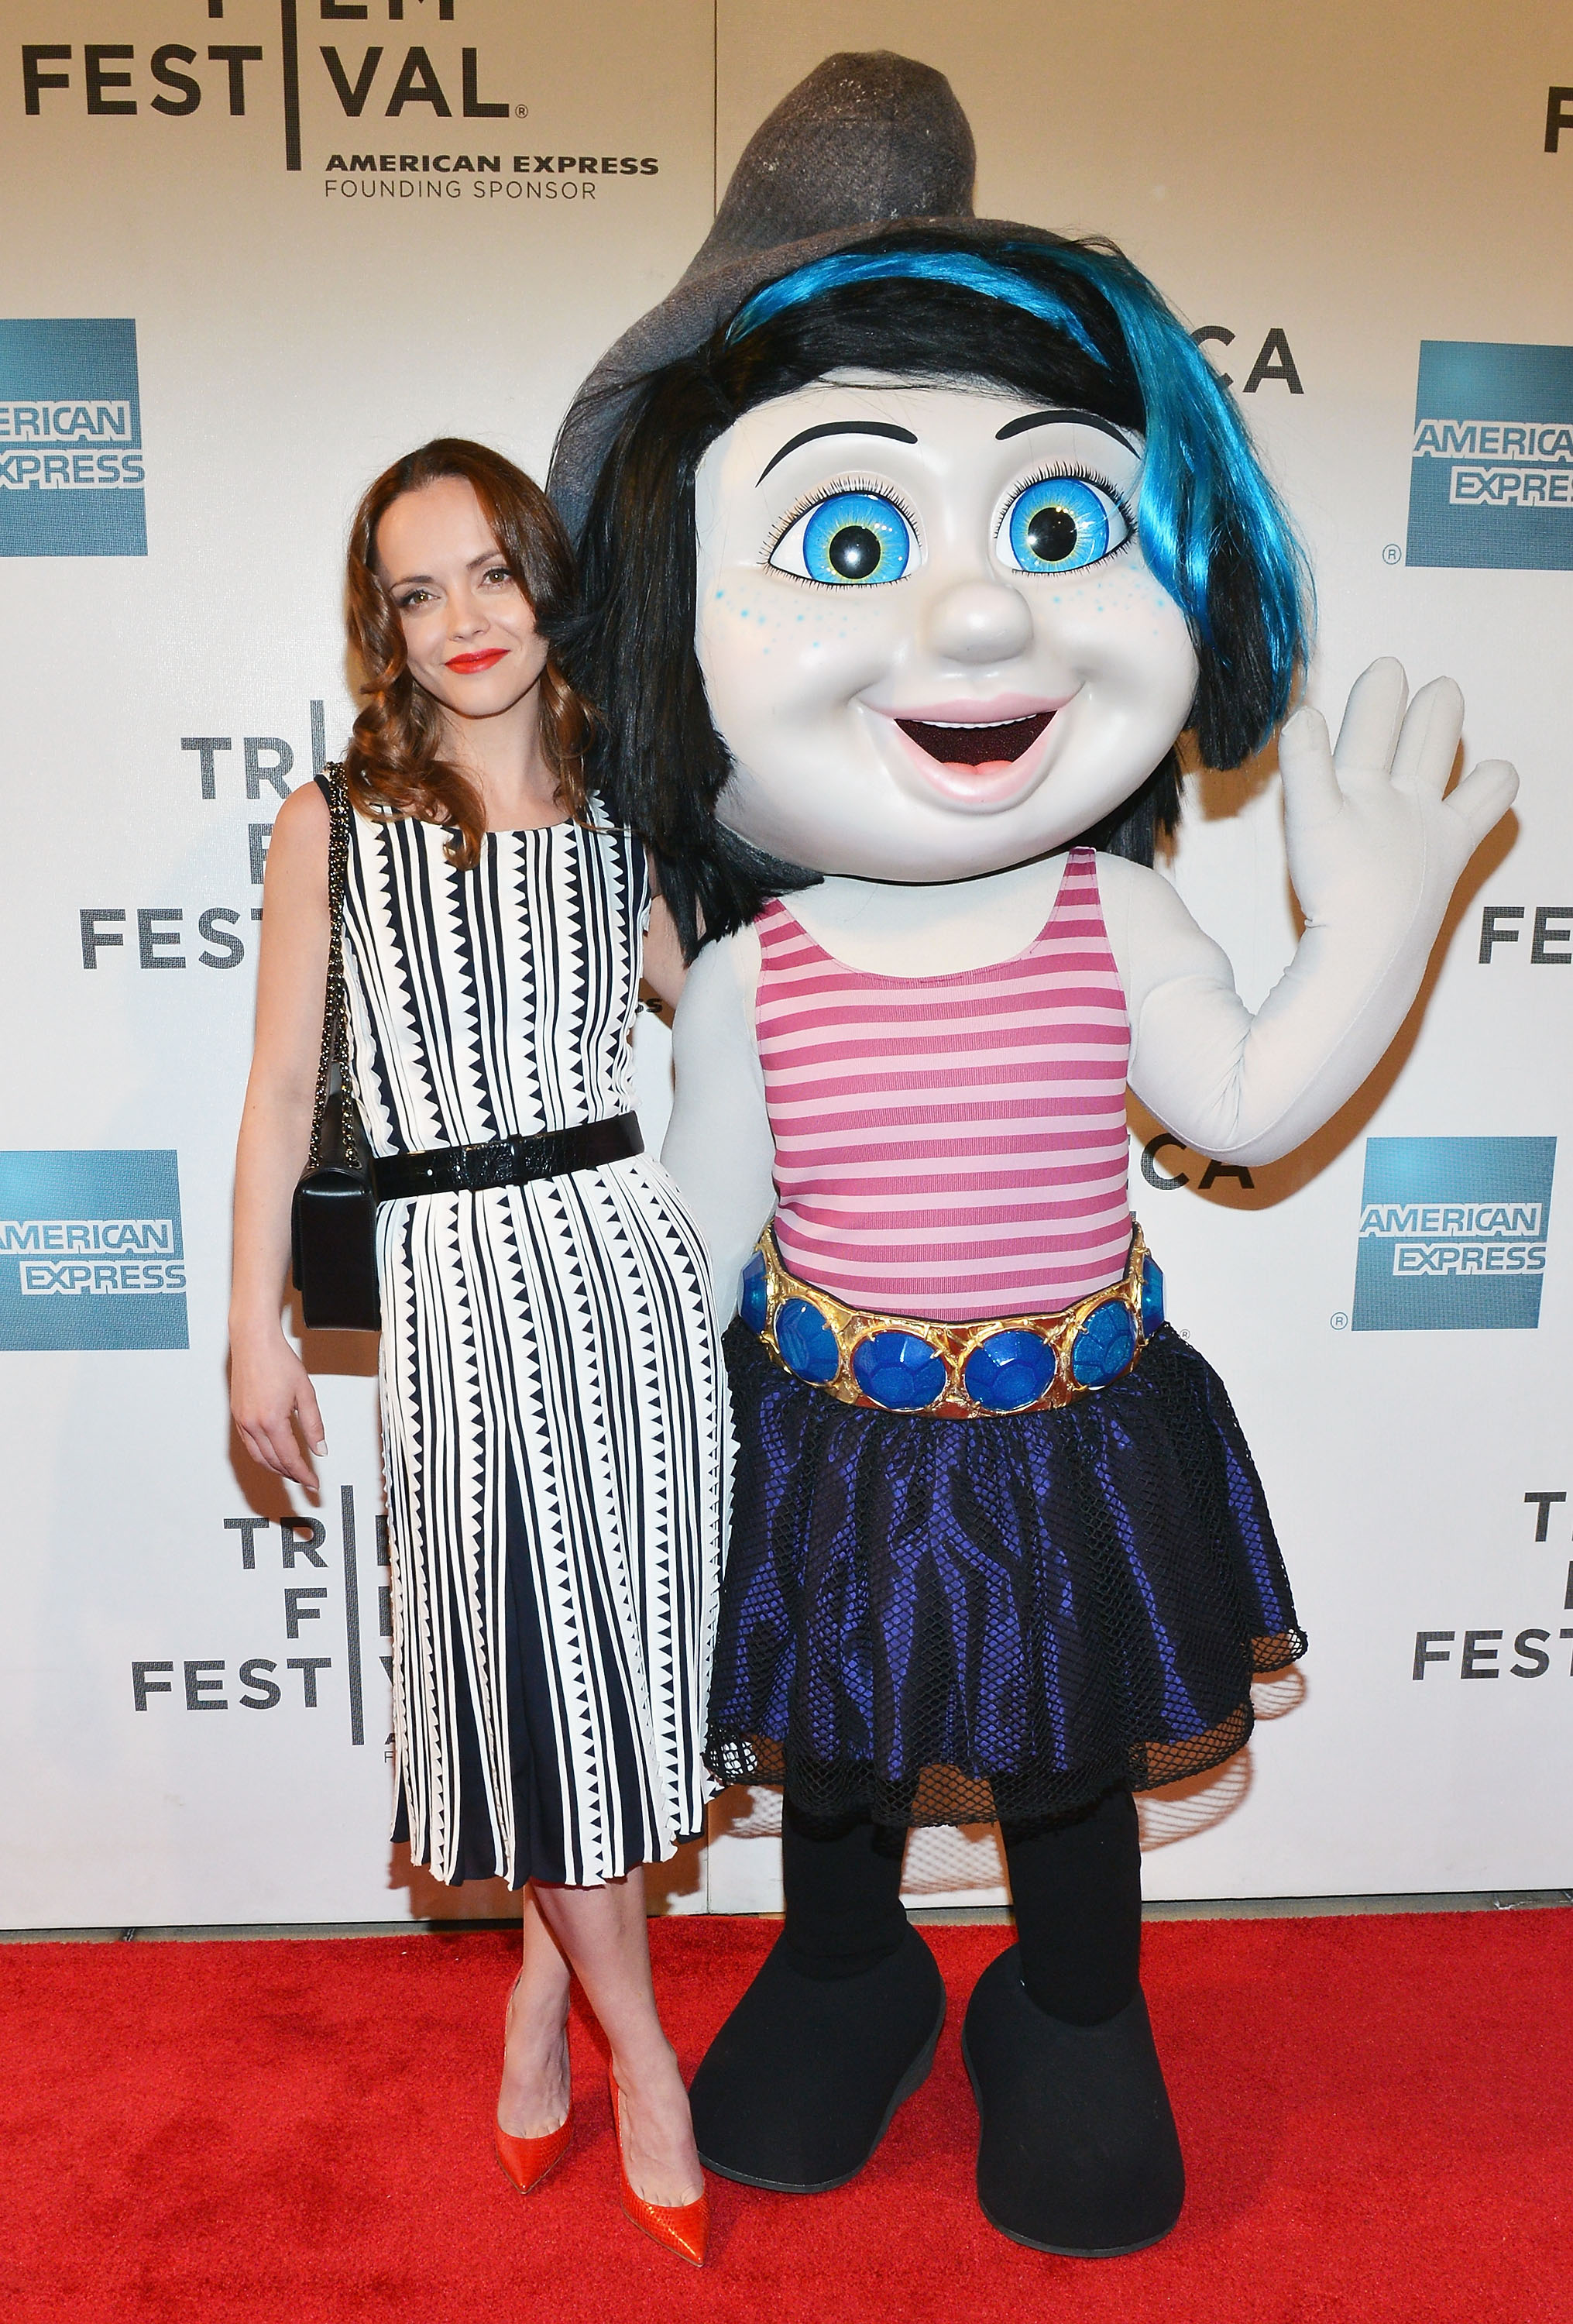 Christina Ricci posed with a character from The Sm